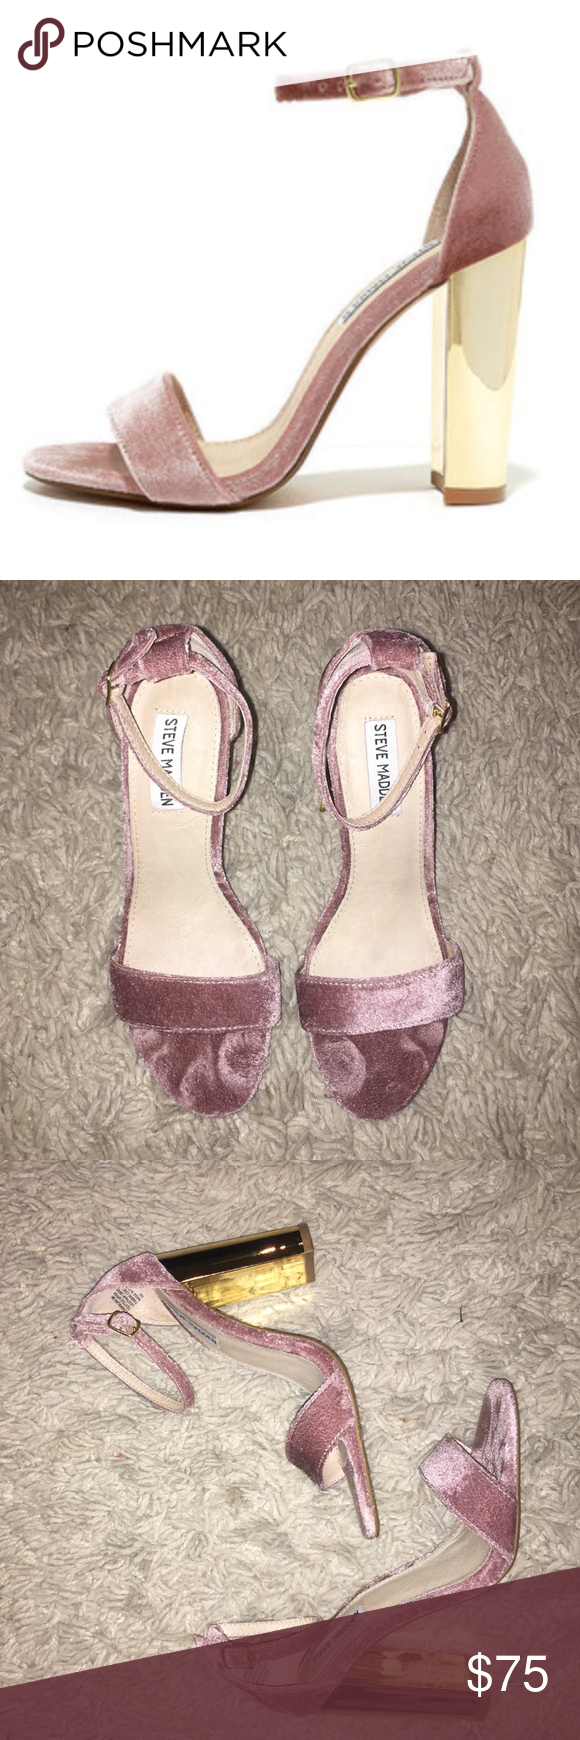 124da5ba171 Steve Madden Carrson Blush  pink velvet Carrson with gold heels. Worn a  couple times great condition. A few scratches on the gold as shown above.